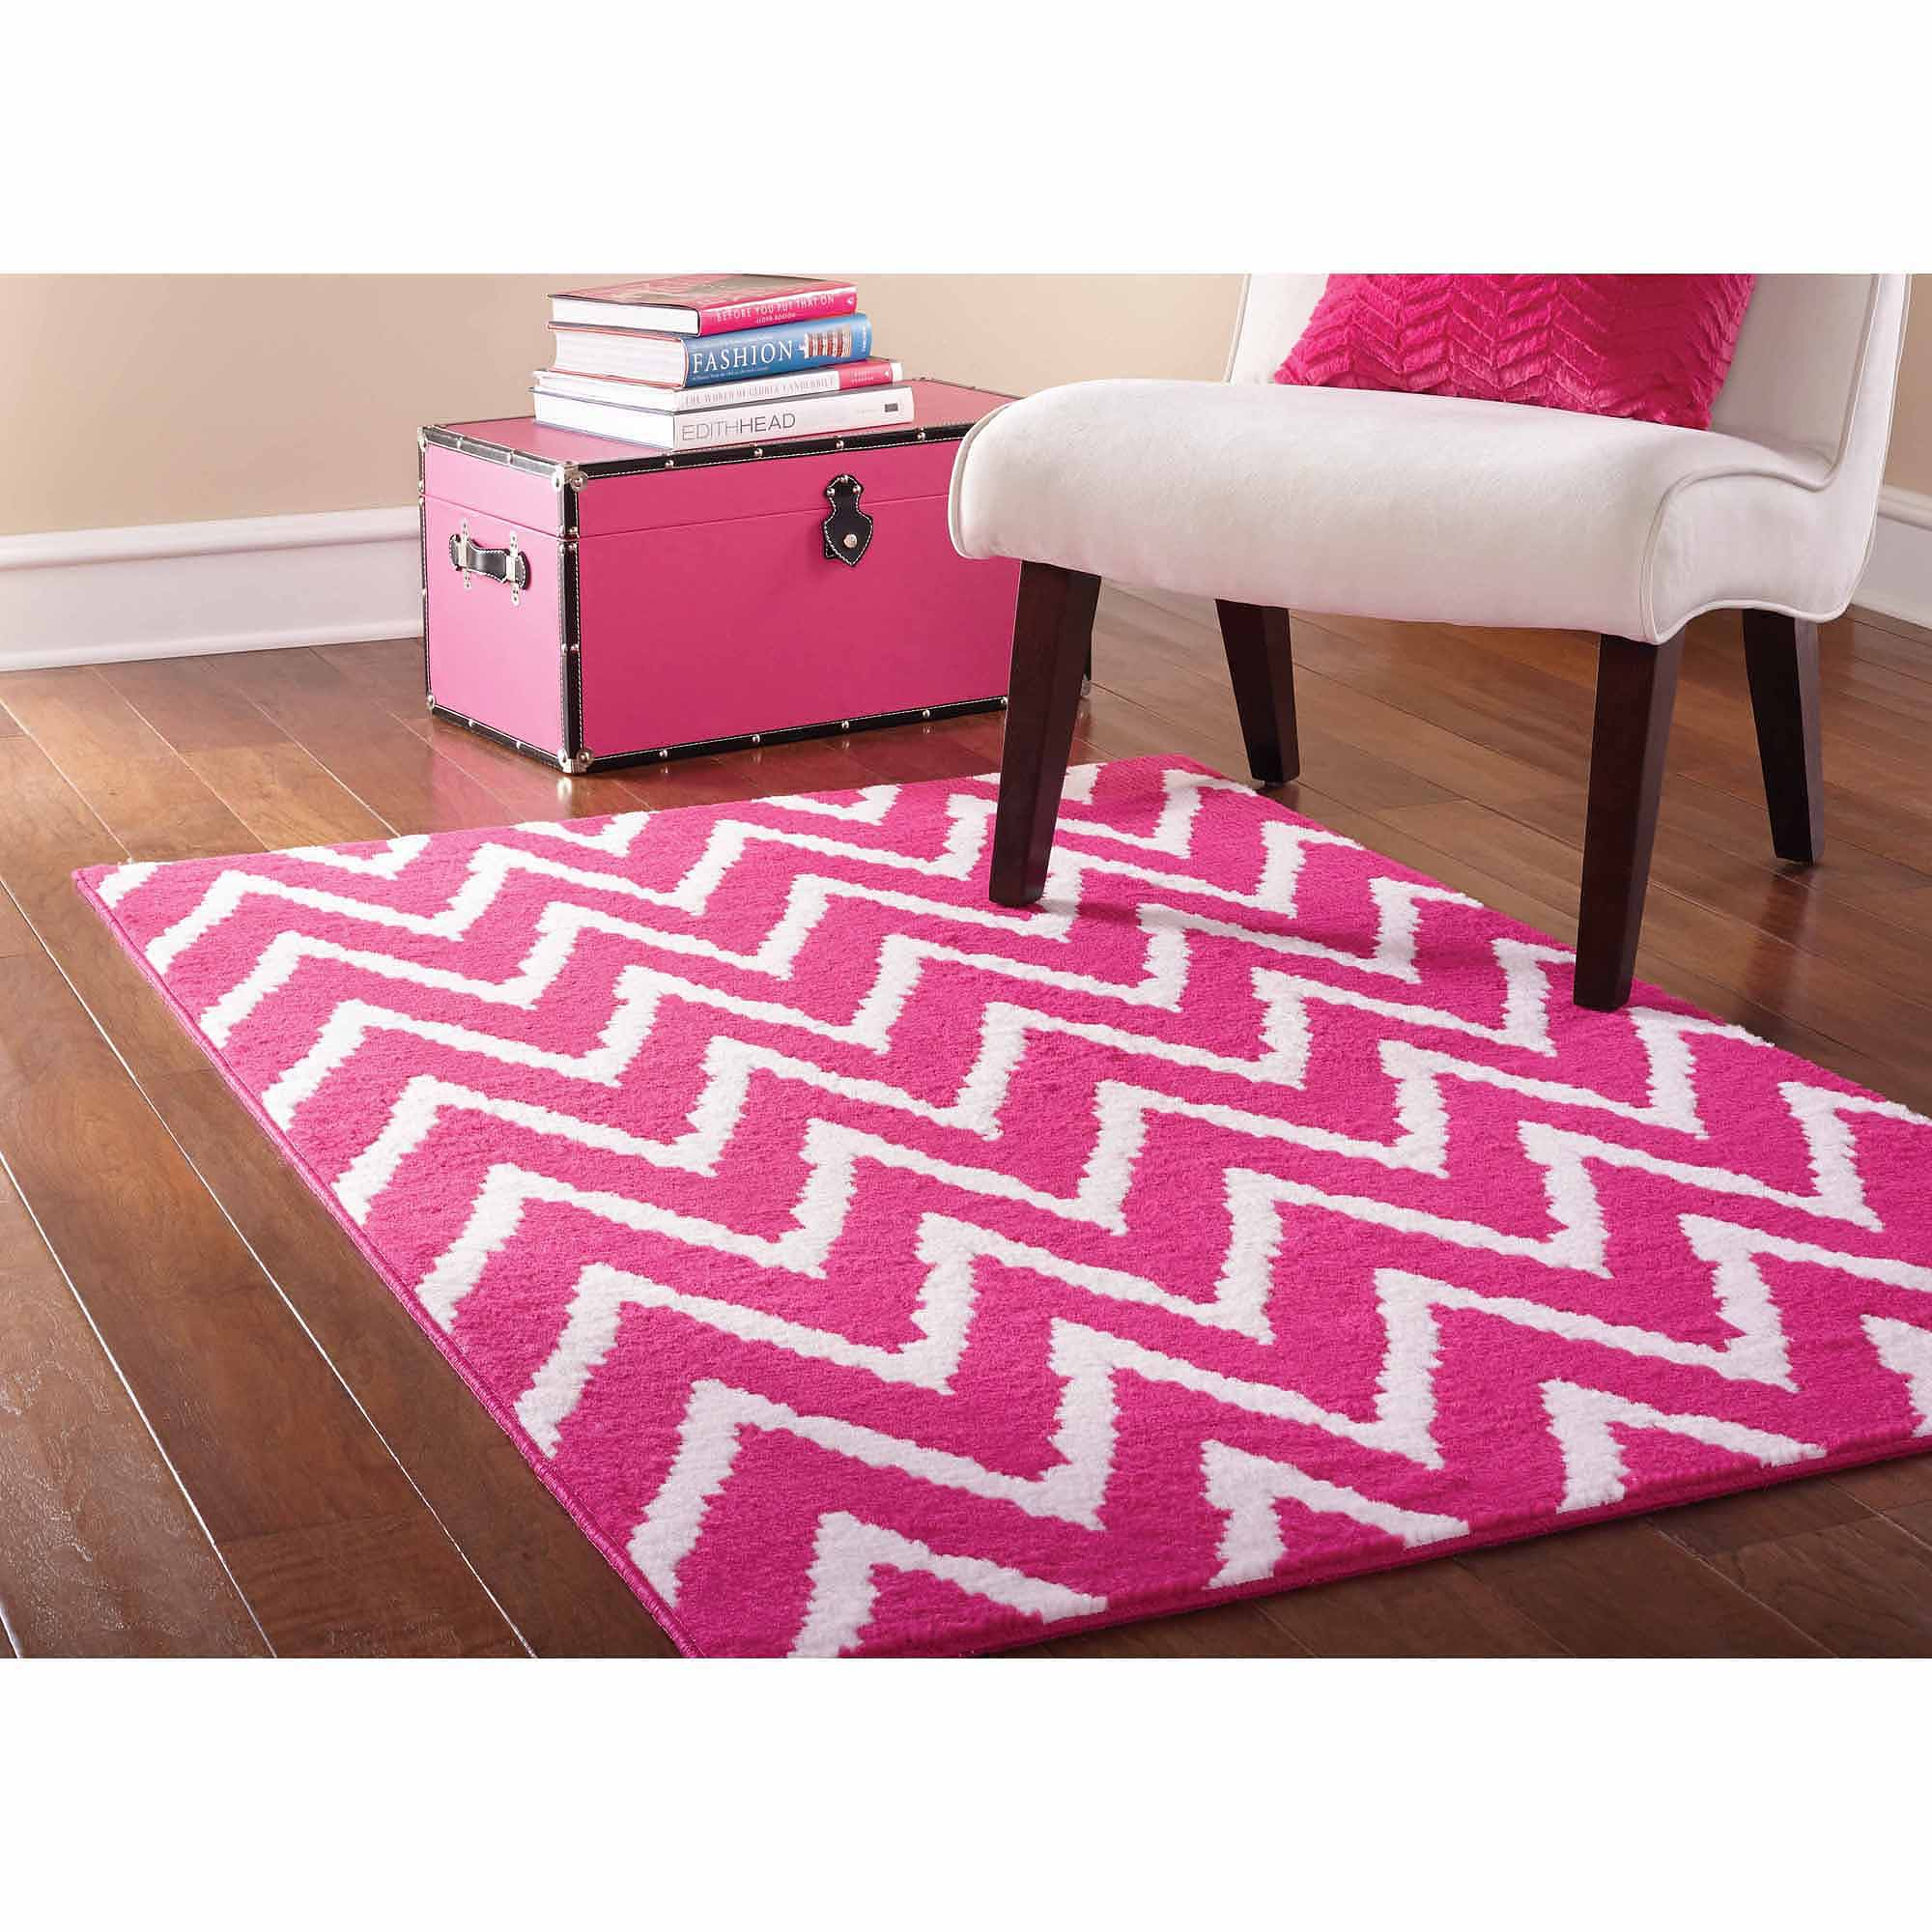 Kids Girls Pink Rug For Bedroom Playroom Girl Room Modern Chevron